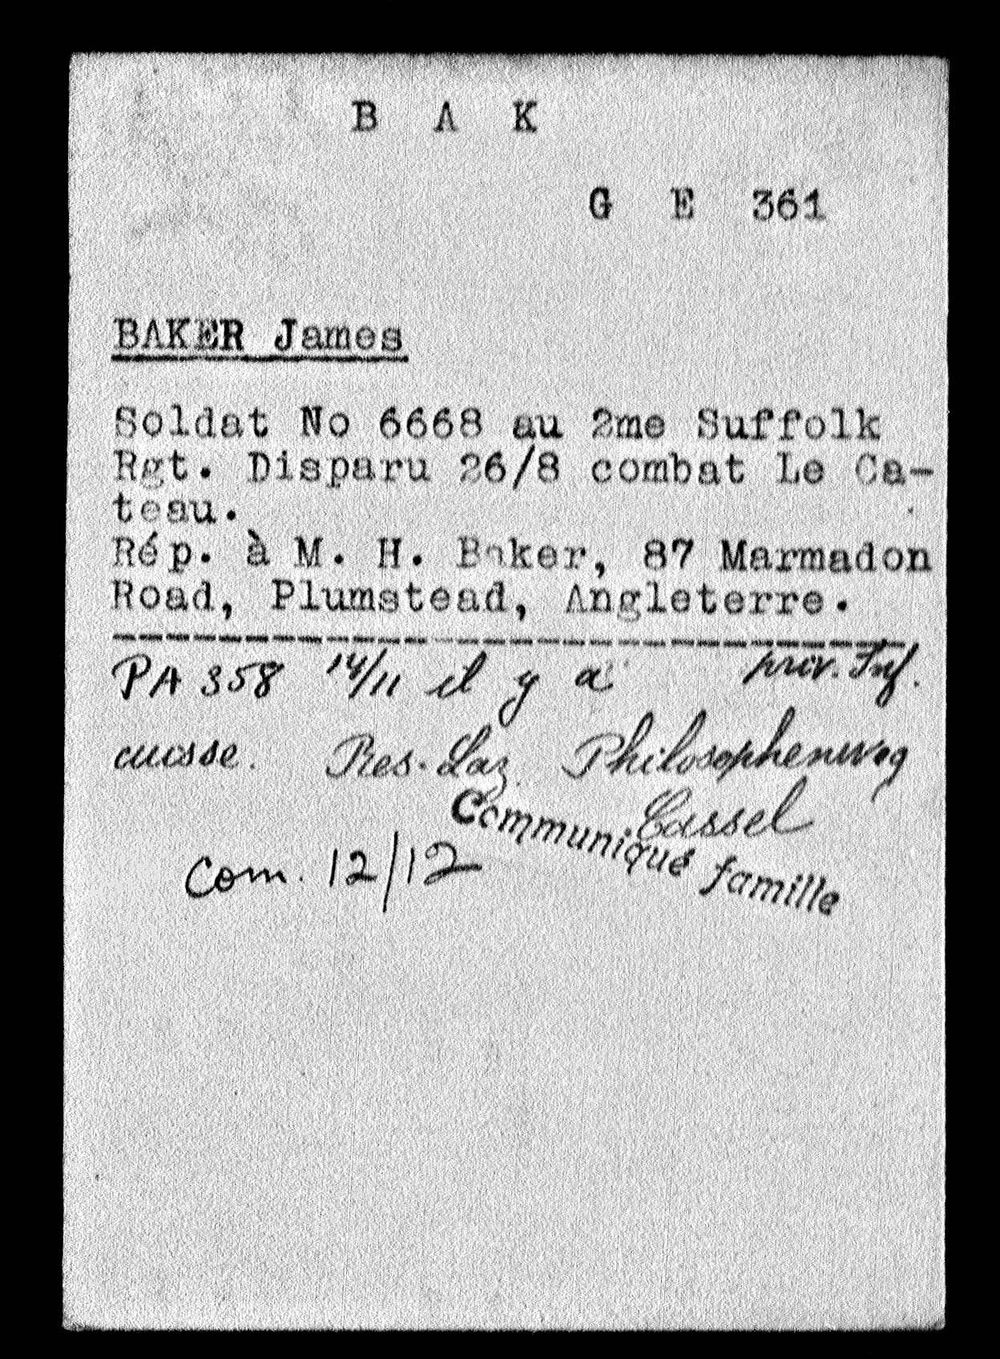 James Baker red cross document.jpg